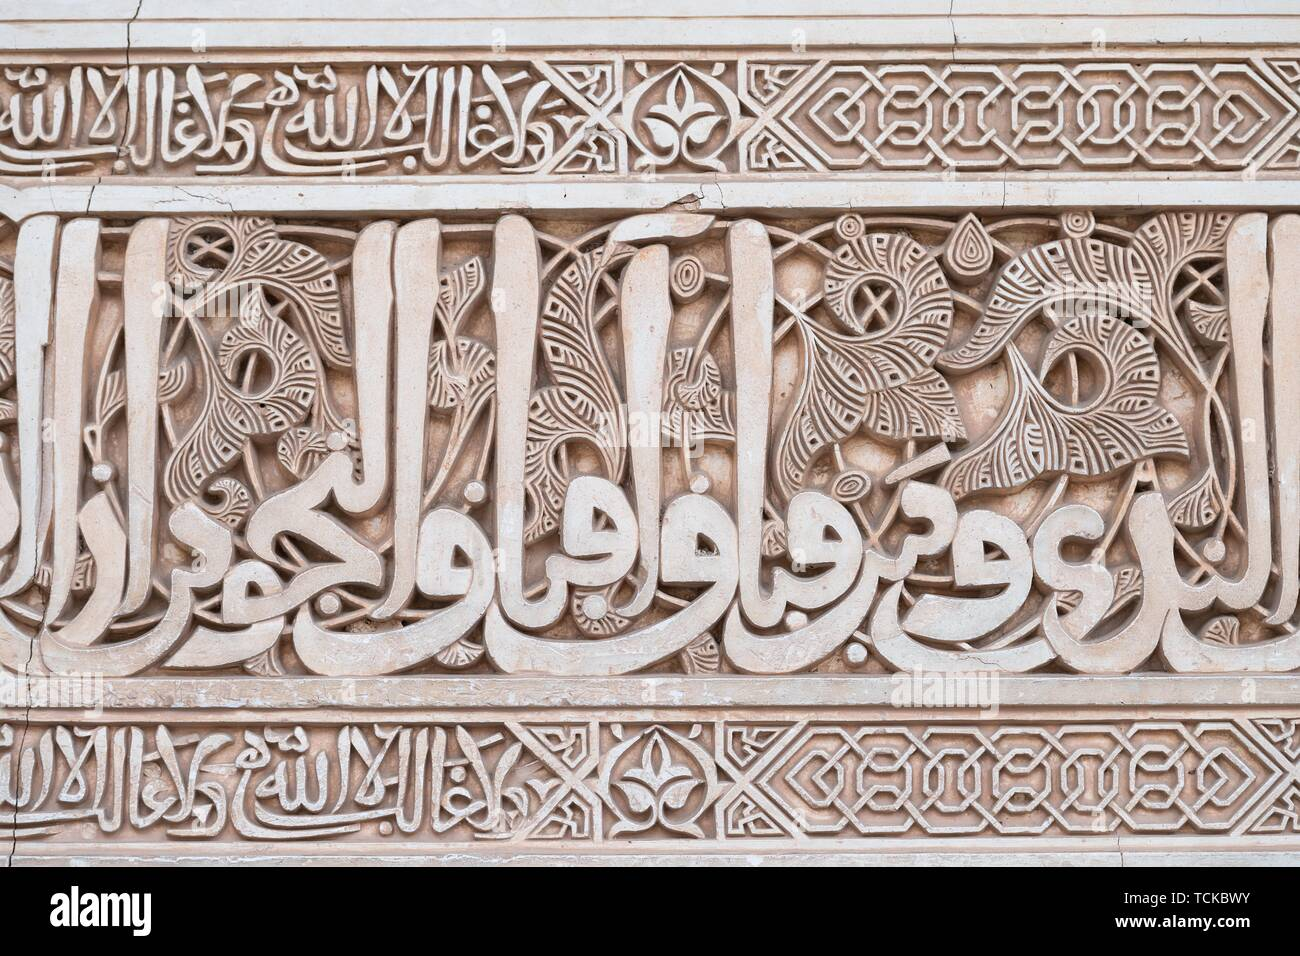 Ornamental Moorish plaster decorations and Koransuren, Nasrid palaces, Alhambra, Granada, Andalusia, Spain Stock Photo